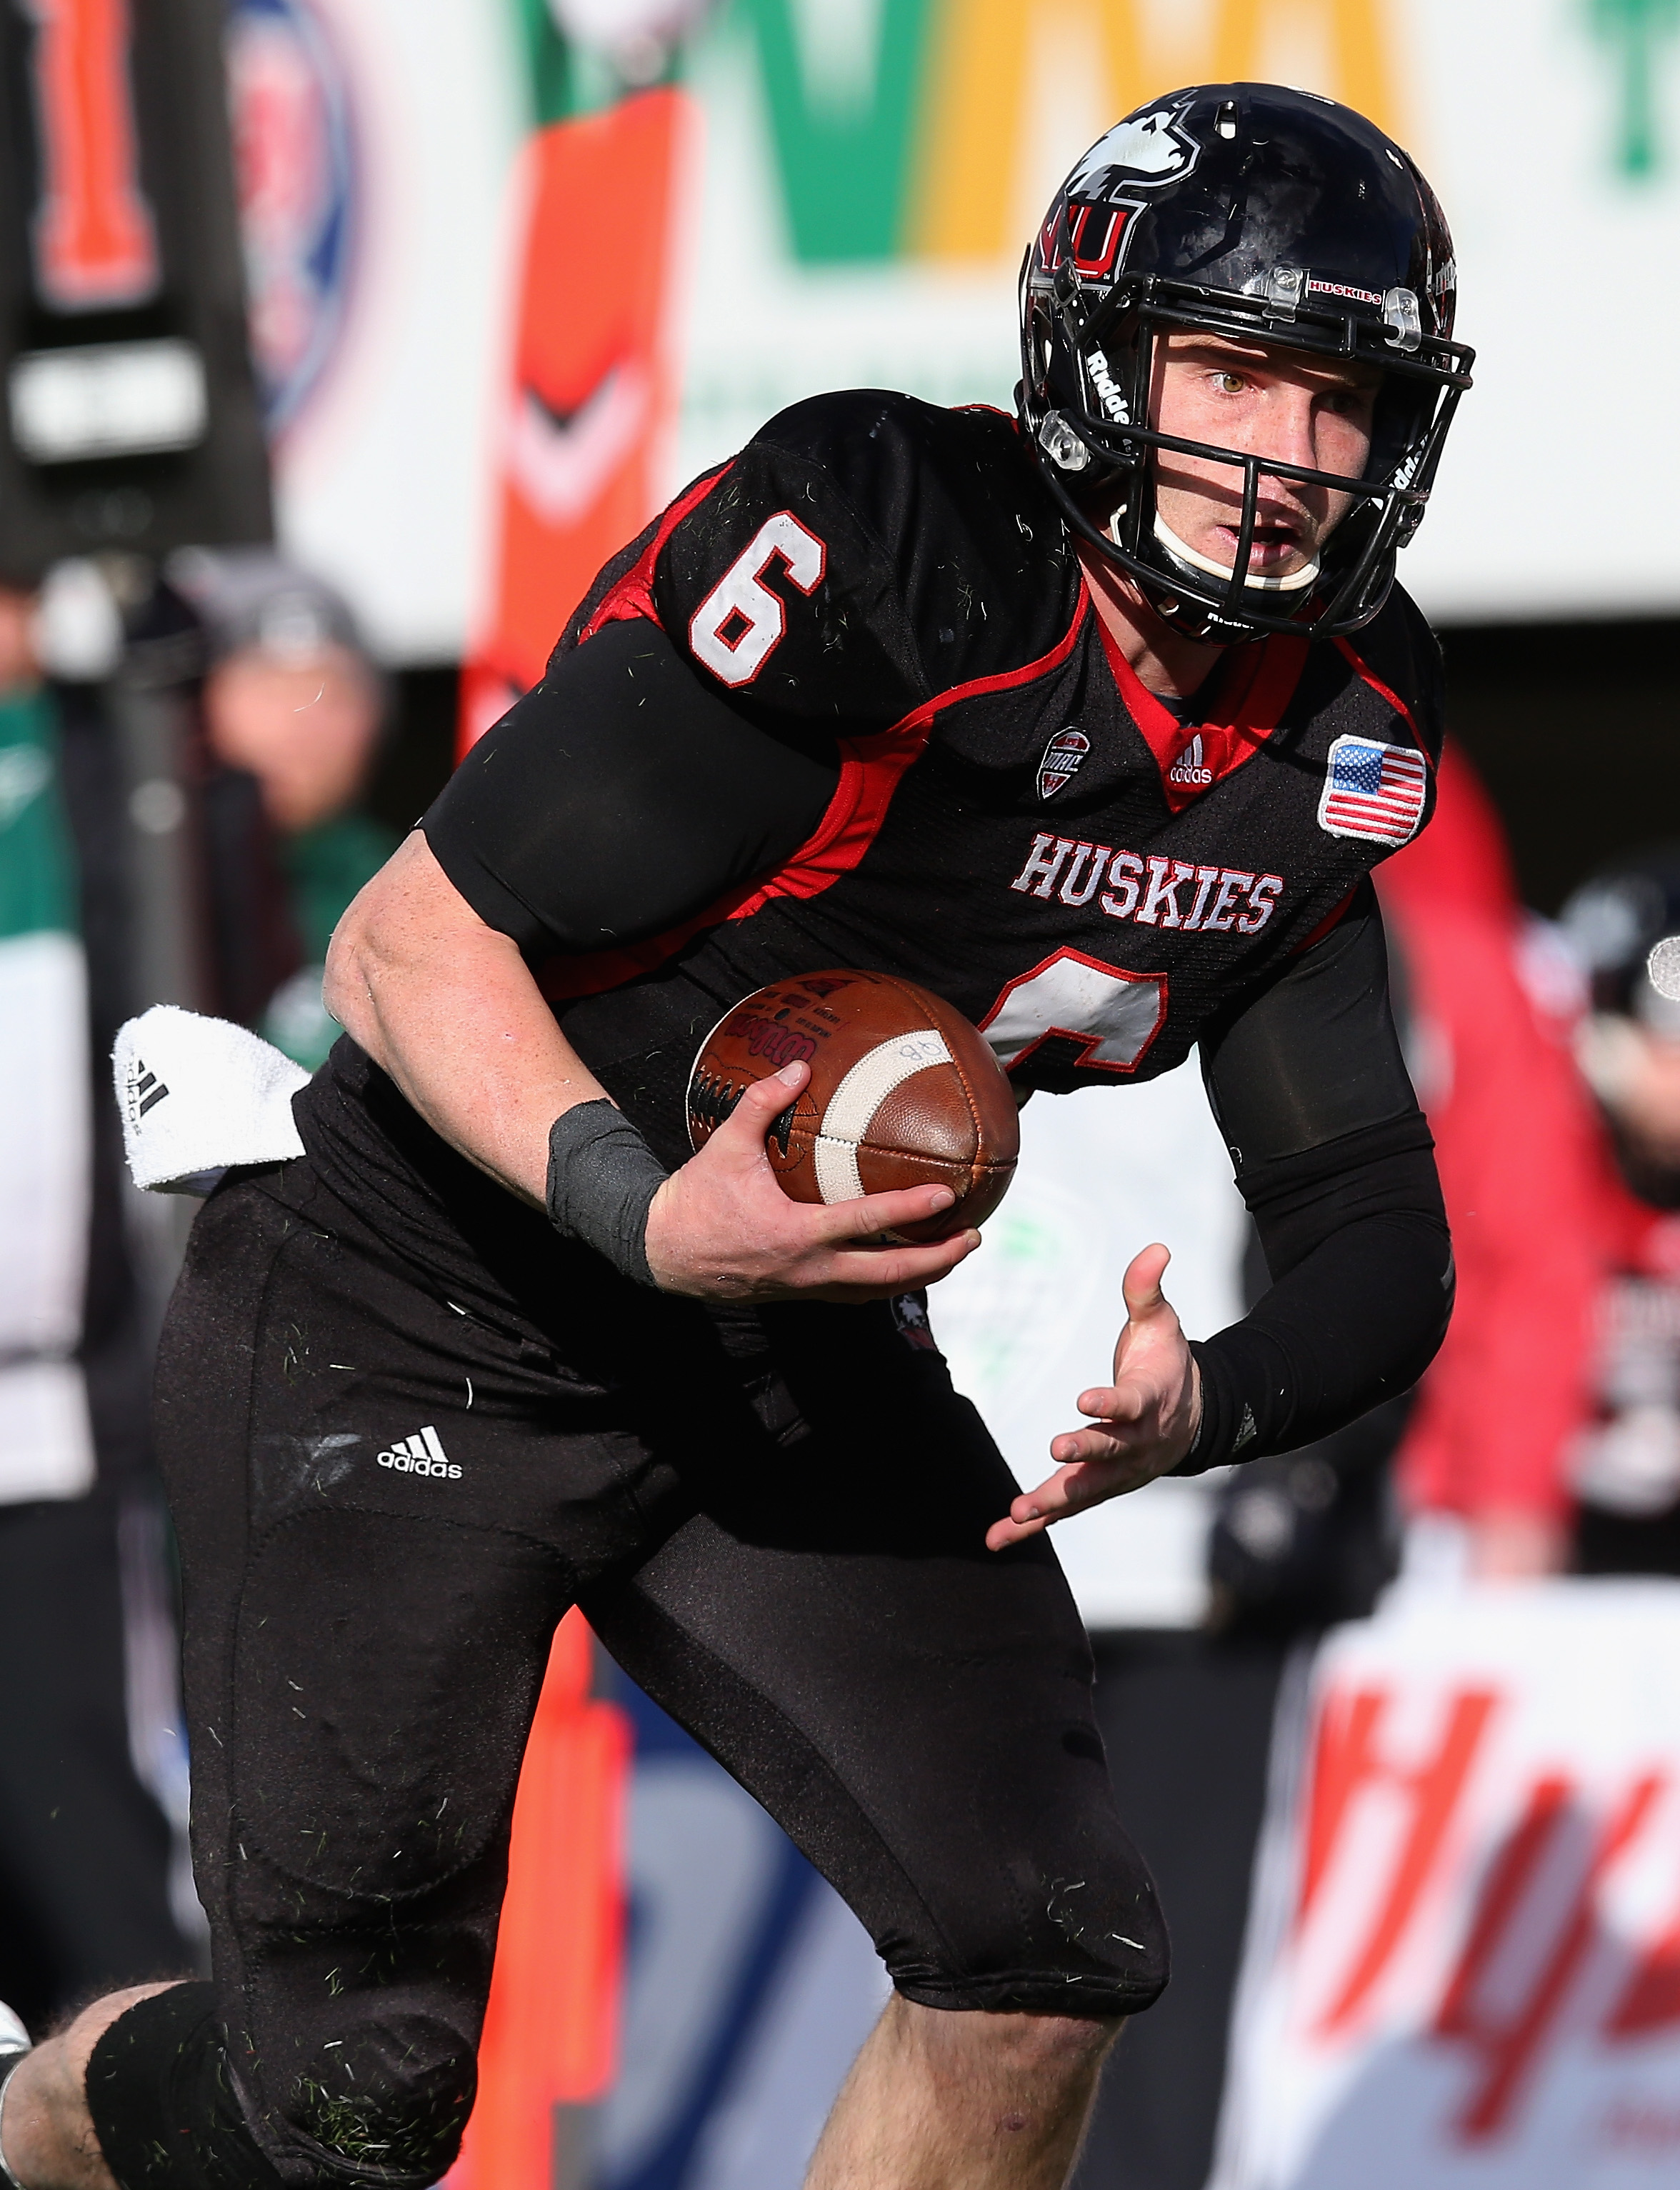 DEKALB, IL - OCTOBER 26: Jordan Lynch #6 of the Northern Illinois Huskies runs for a touchdown against the Eastern Michigan Eagles at Brigham Field on October 26, 2013 in DeKalb, Illinois. (Photo by Jonathan Daniel/Getty Images)